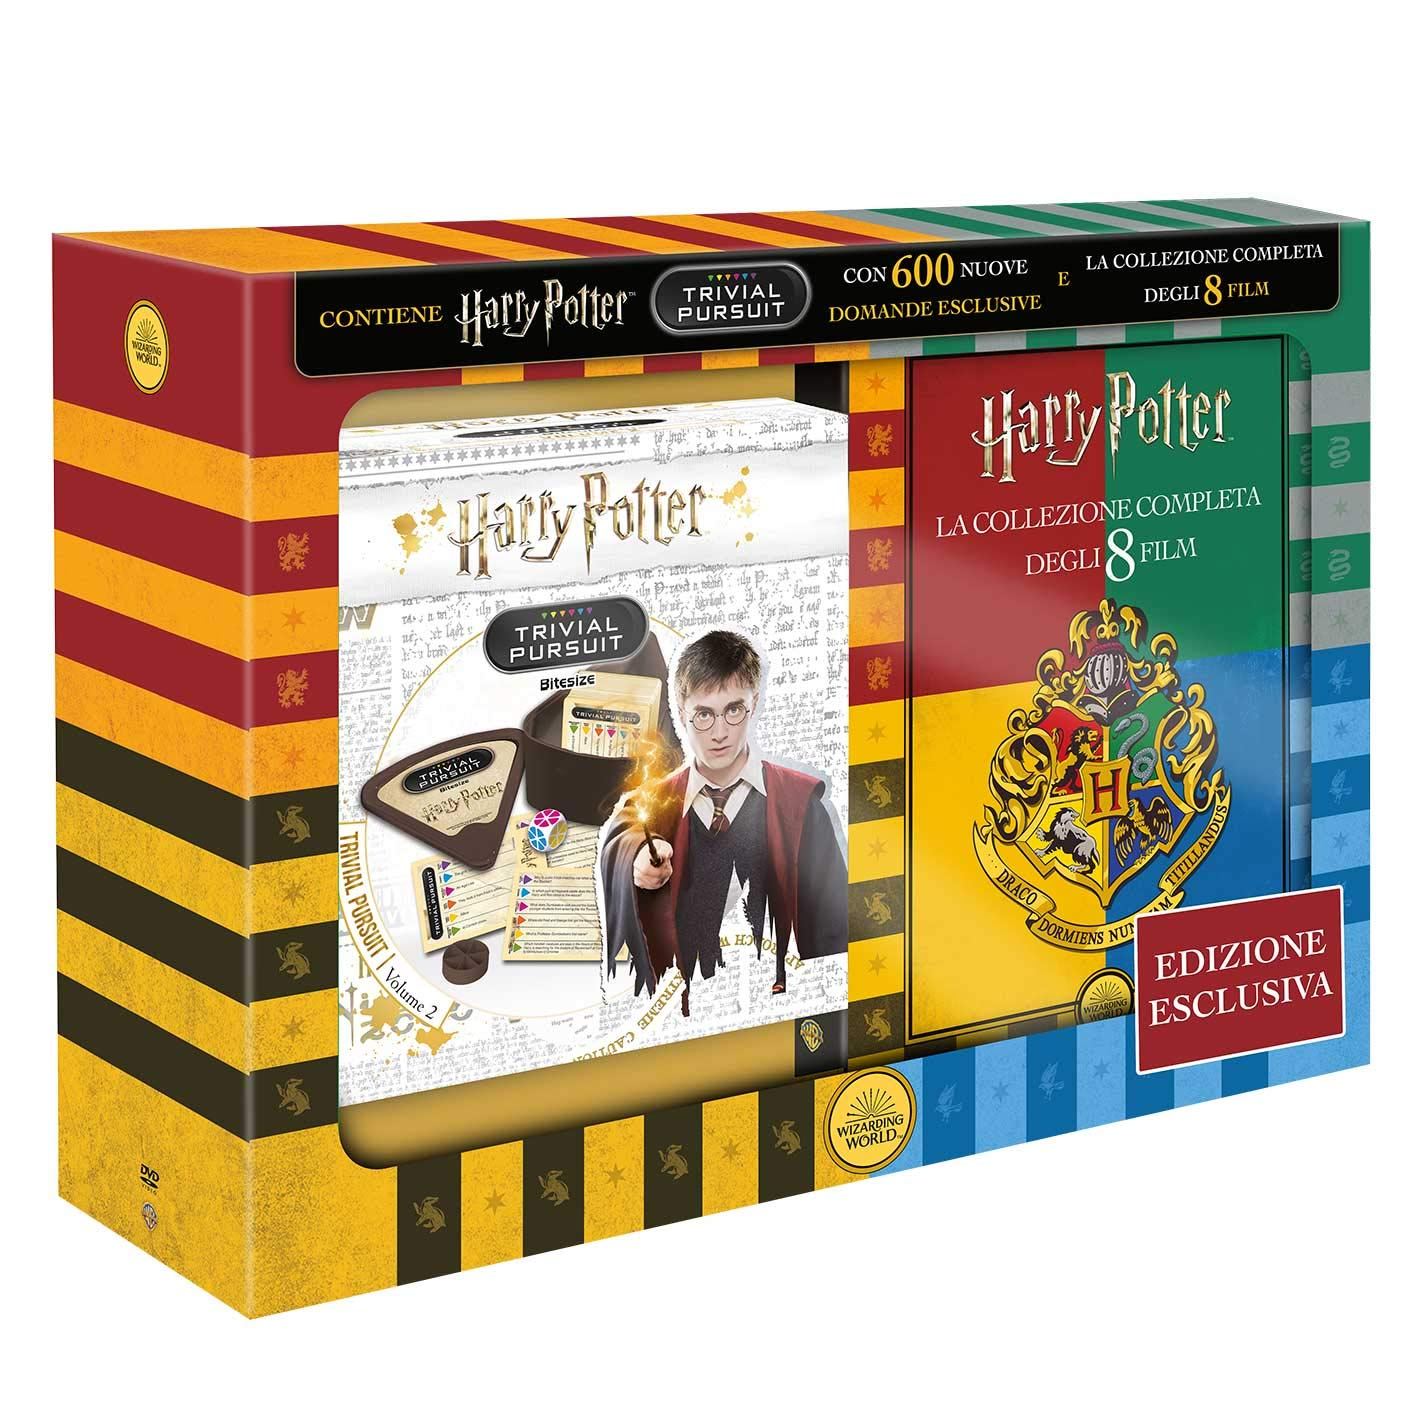 Harry Potter 8 Film DVD Collection & Trivial Pursuit